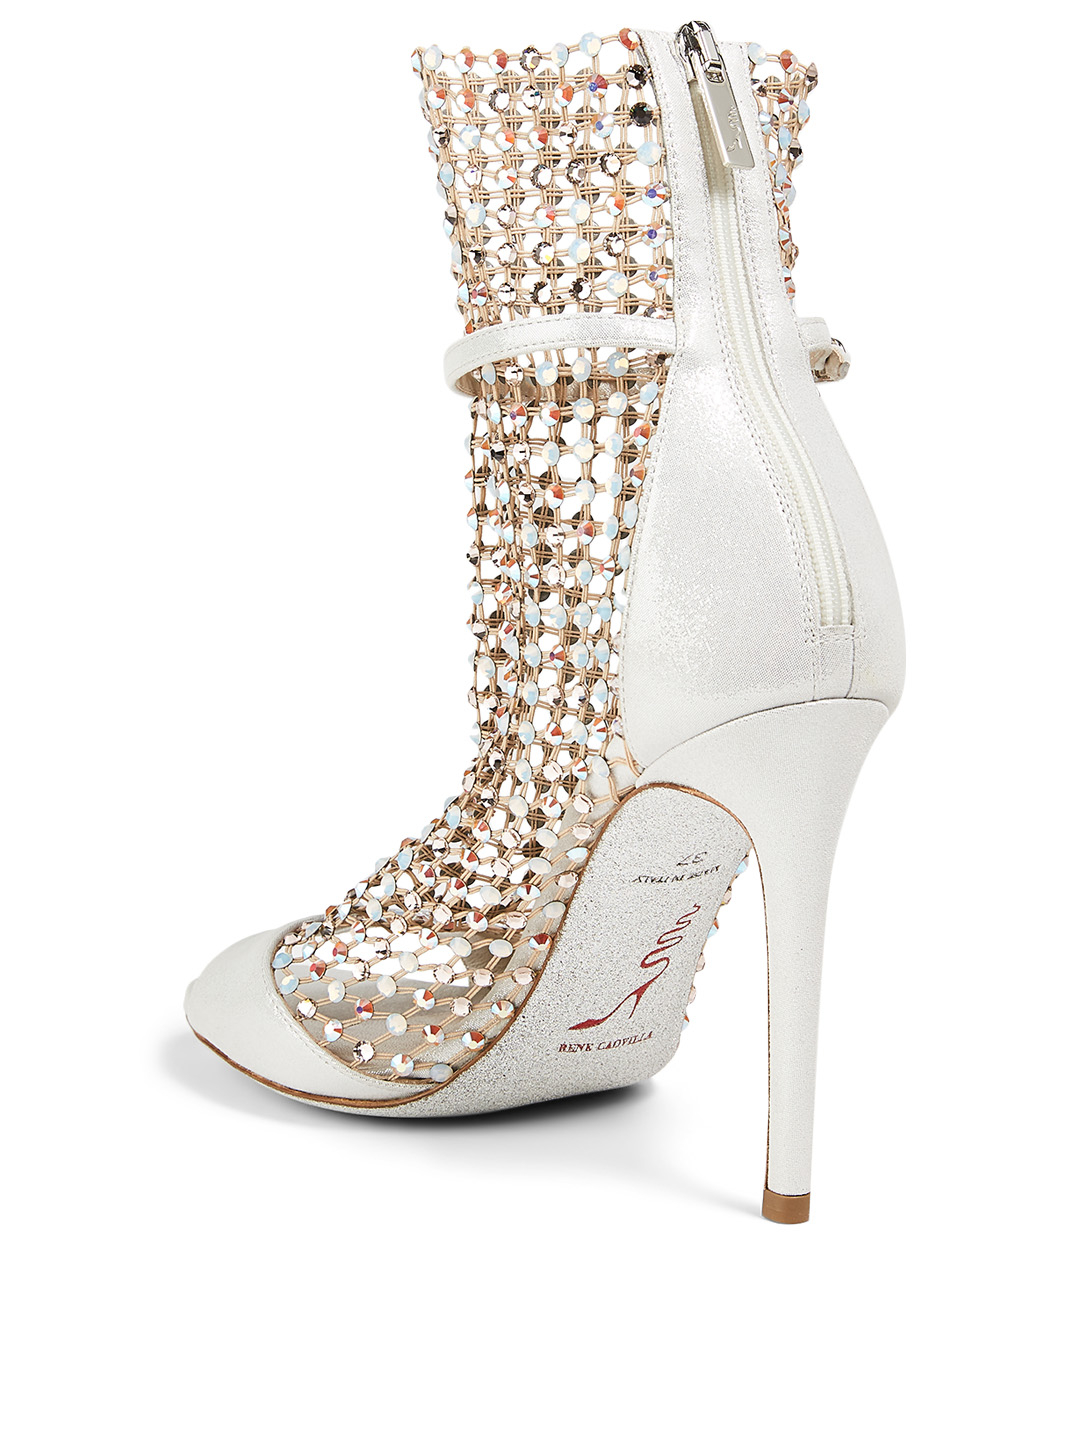 RENE CAOVILLA Galaxia 105 Metallic Leather And Crystal-Net Heeled Sandals Women's White